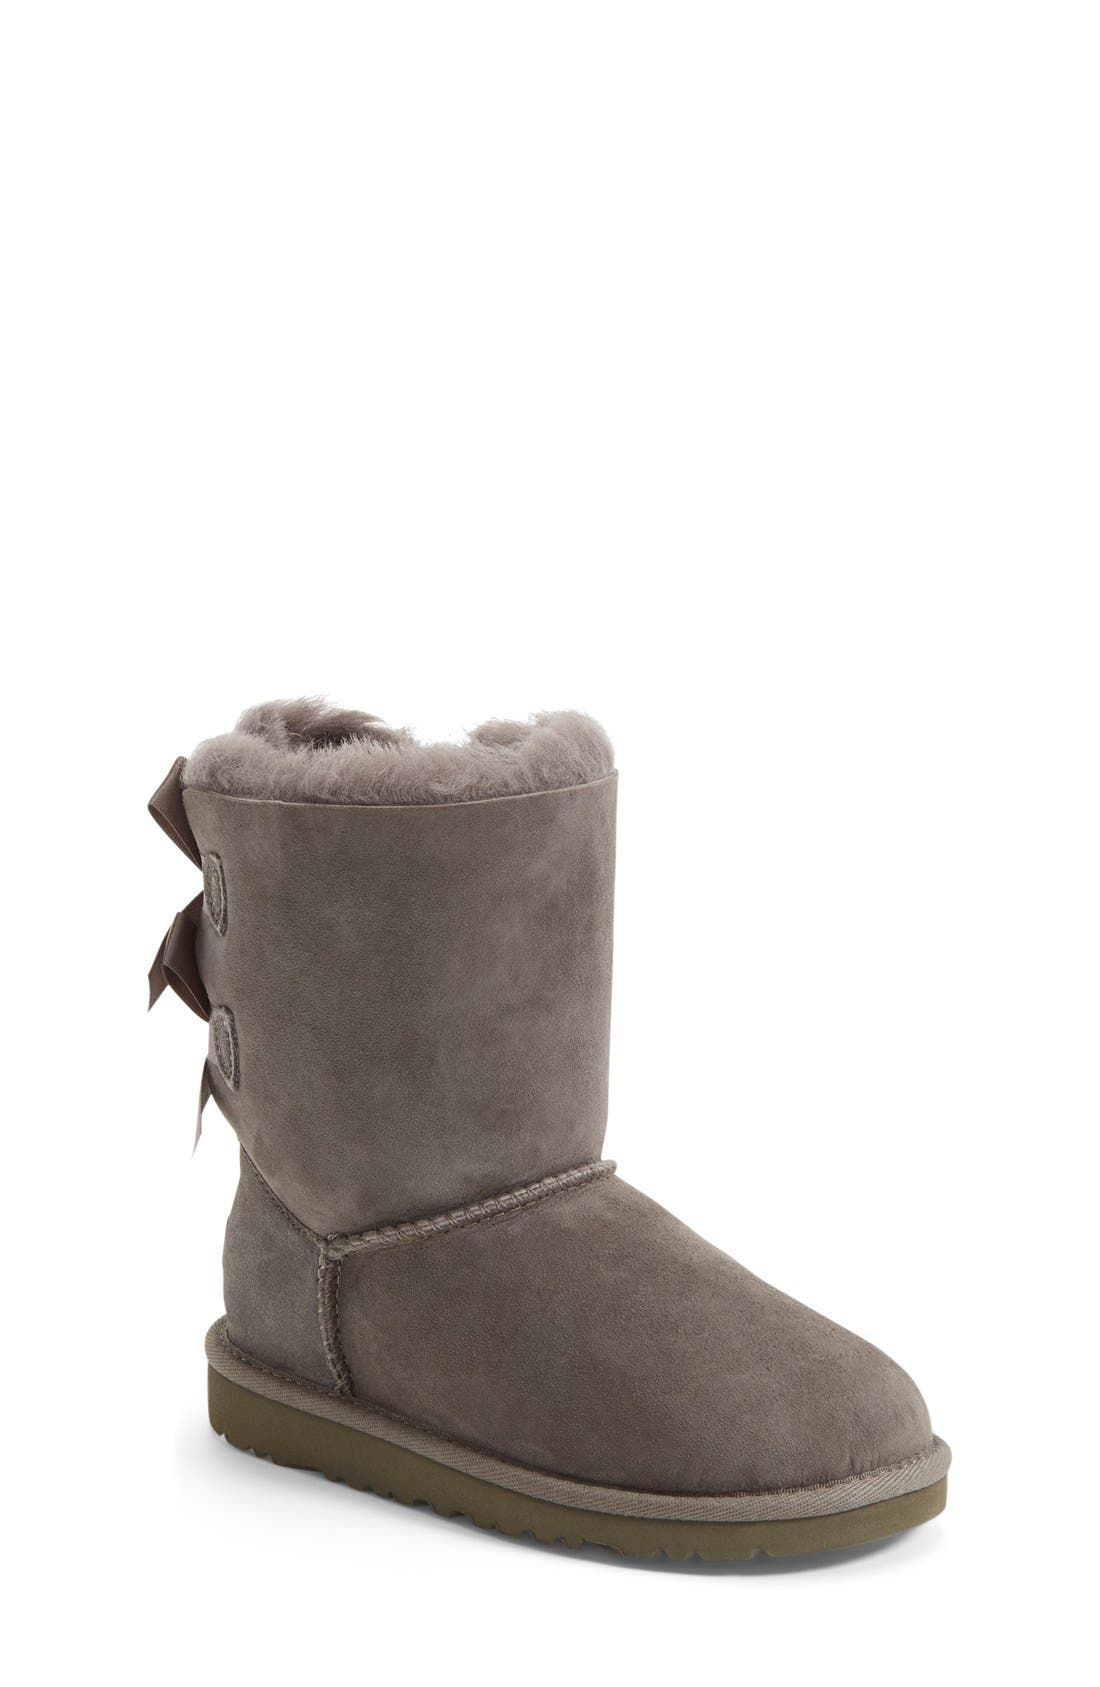 Main Image - UGG® Bailey Bow Boot (Walker, Toddler, Little Kid & Big Kid)